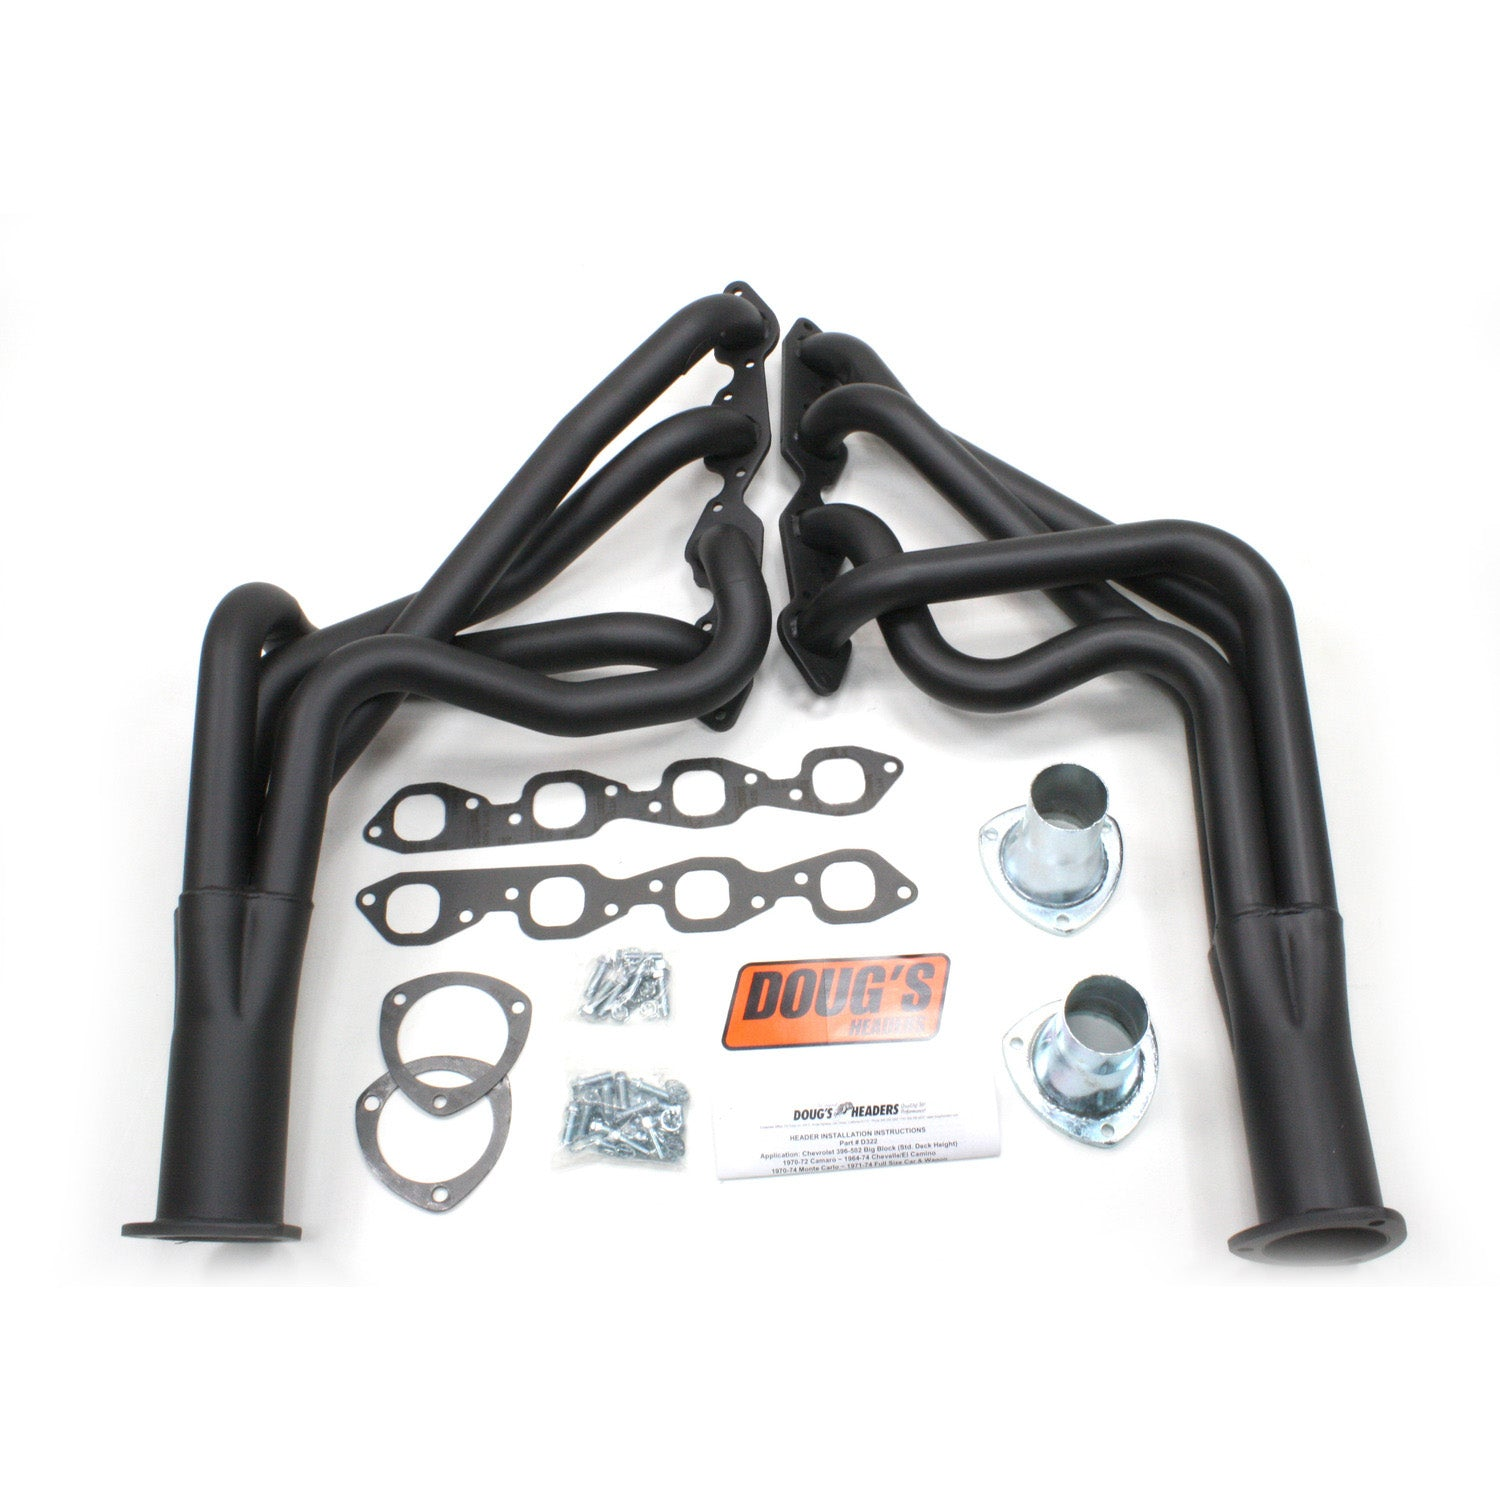 "Doug's Headers D328-B 1 7/8"" 4-Tube Full Length Header Camaro Big Block Chevrolet 67-69 Hi-Temp Black Coating"